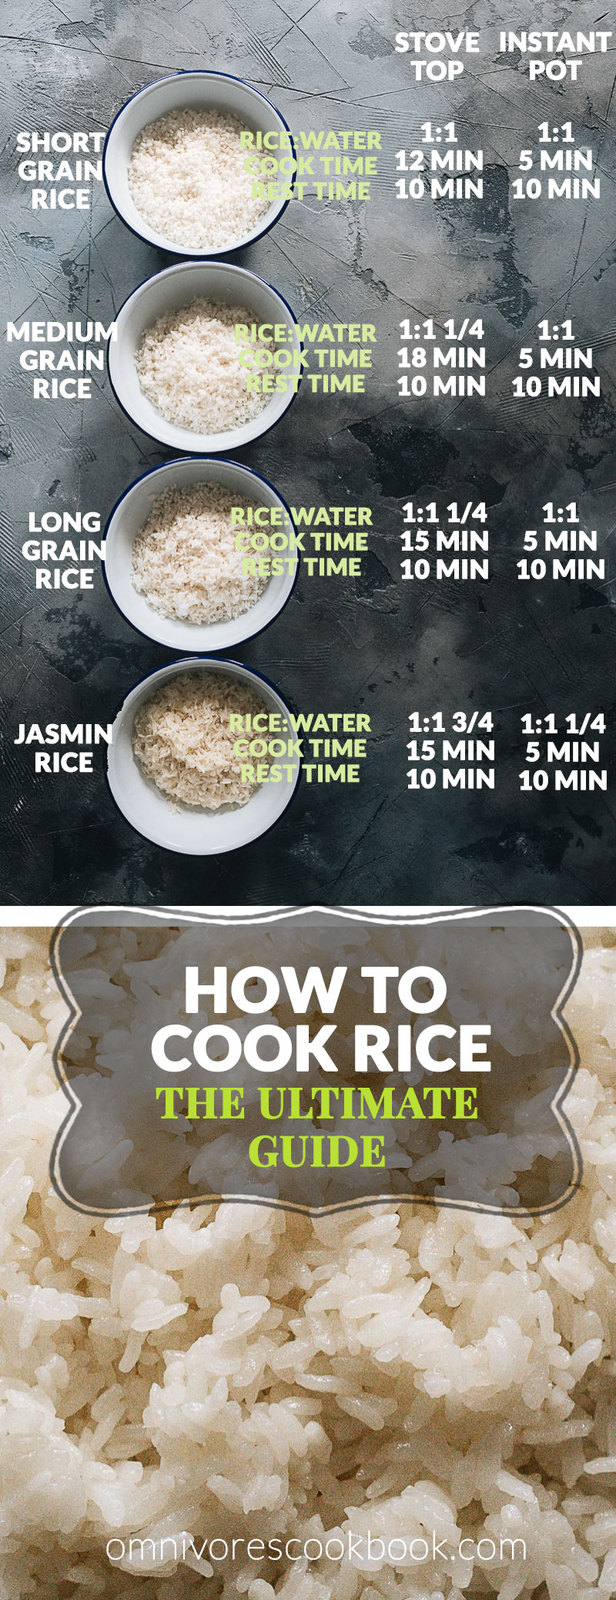 How To Cook Rice The Ultimate Guide Omnivore S Cookbook